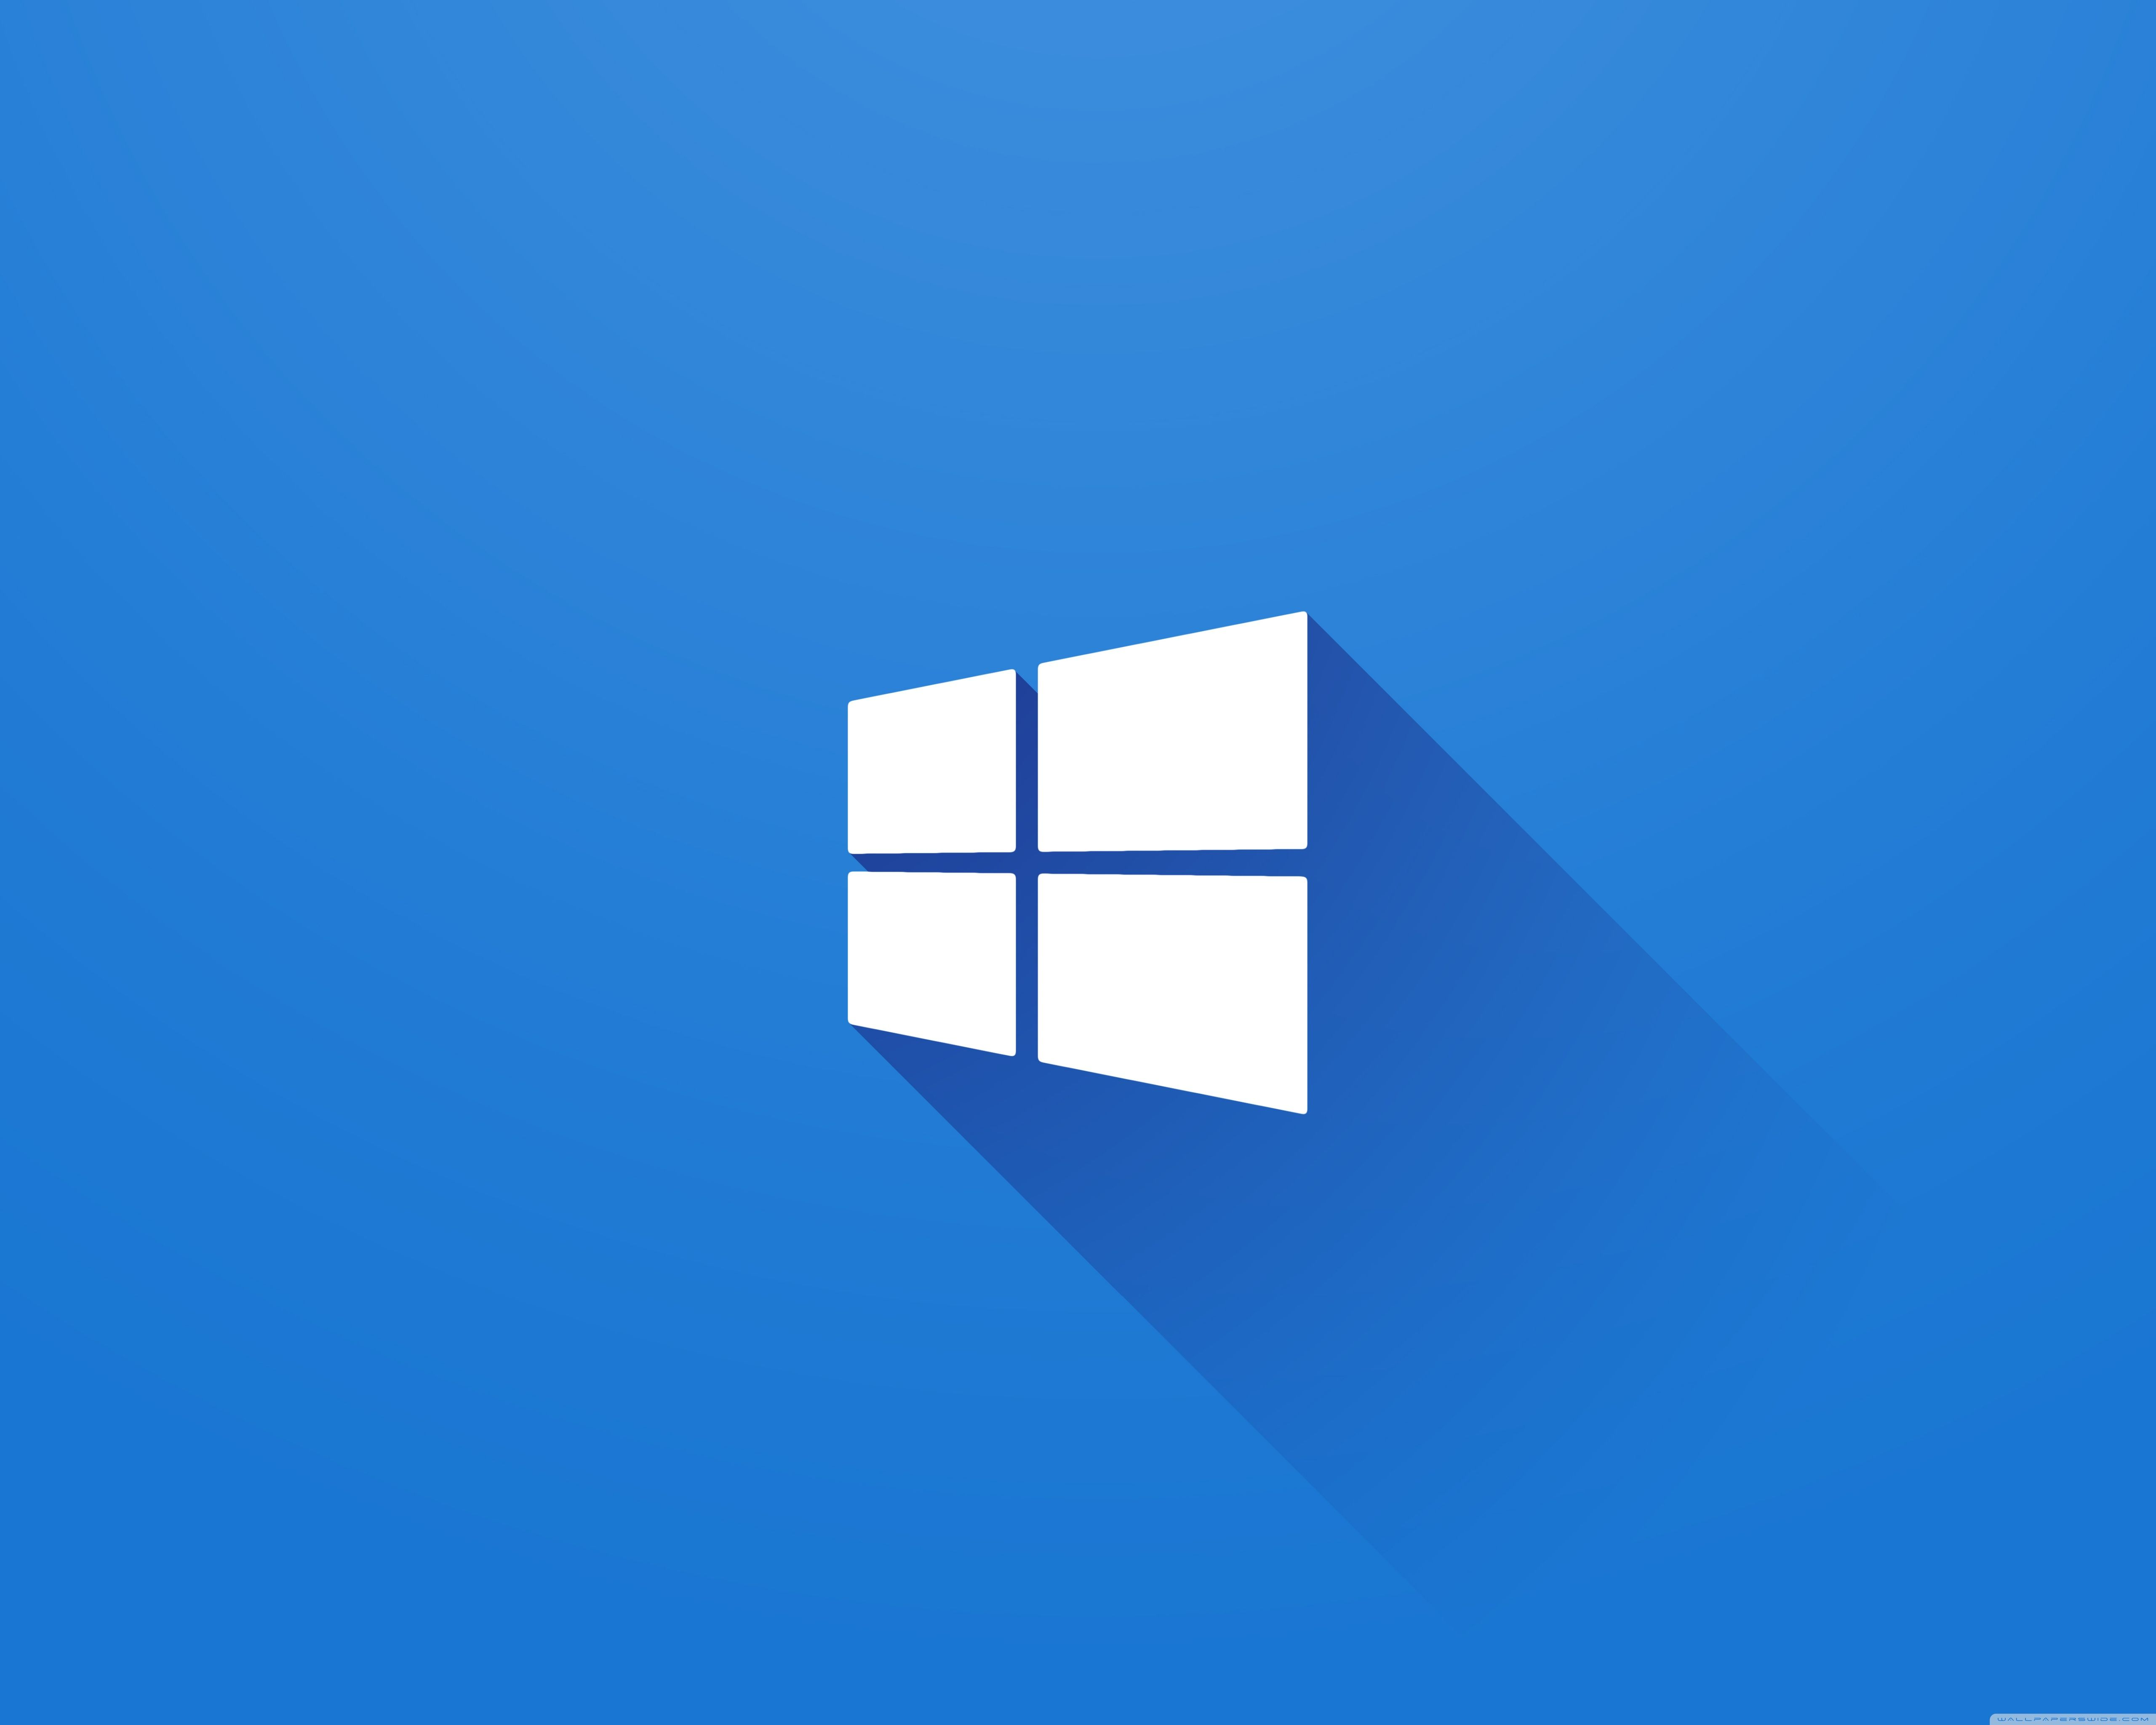 Windows Wallpapers Top Free Windows Backgrounds Wallpaperaccess